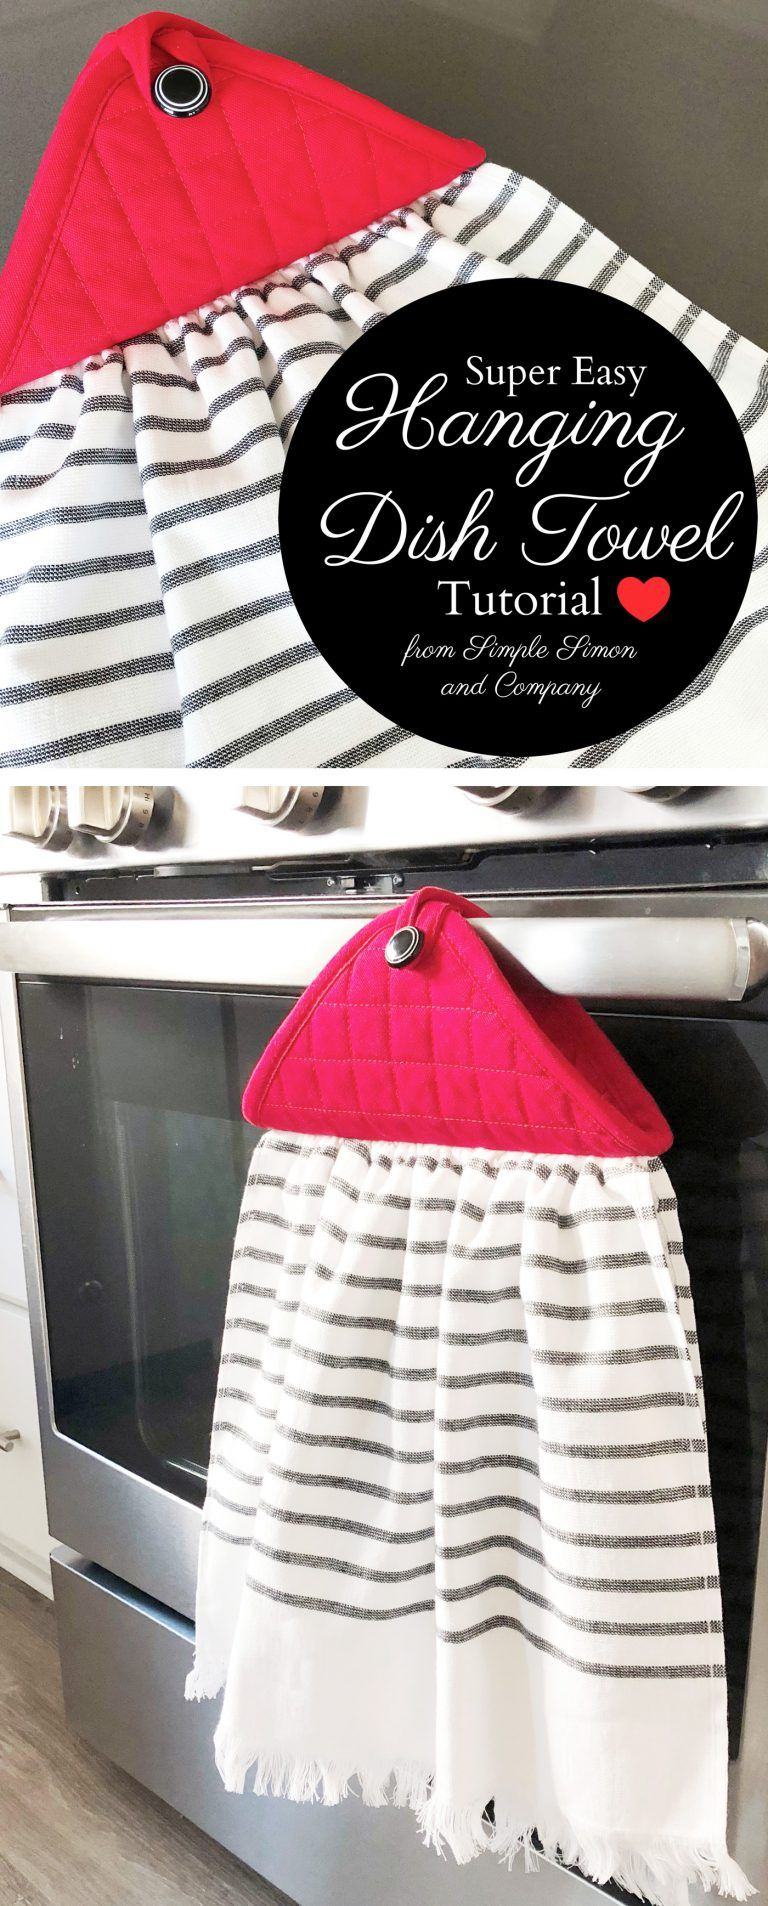 Farmhouse Style Hanging Kitchen Towel Tutorial #handtowels